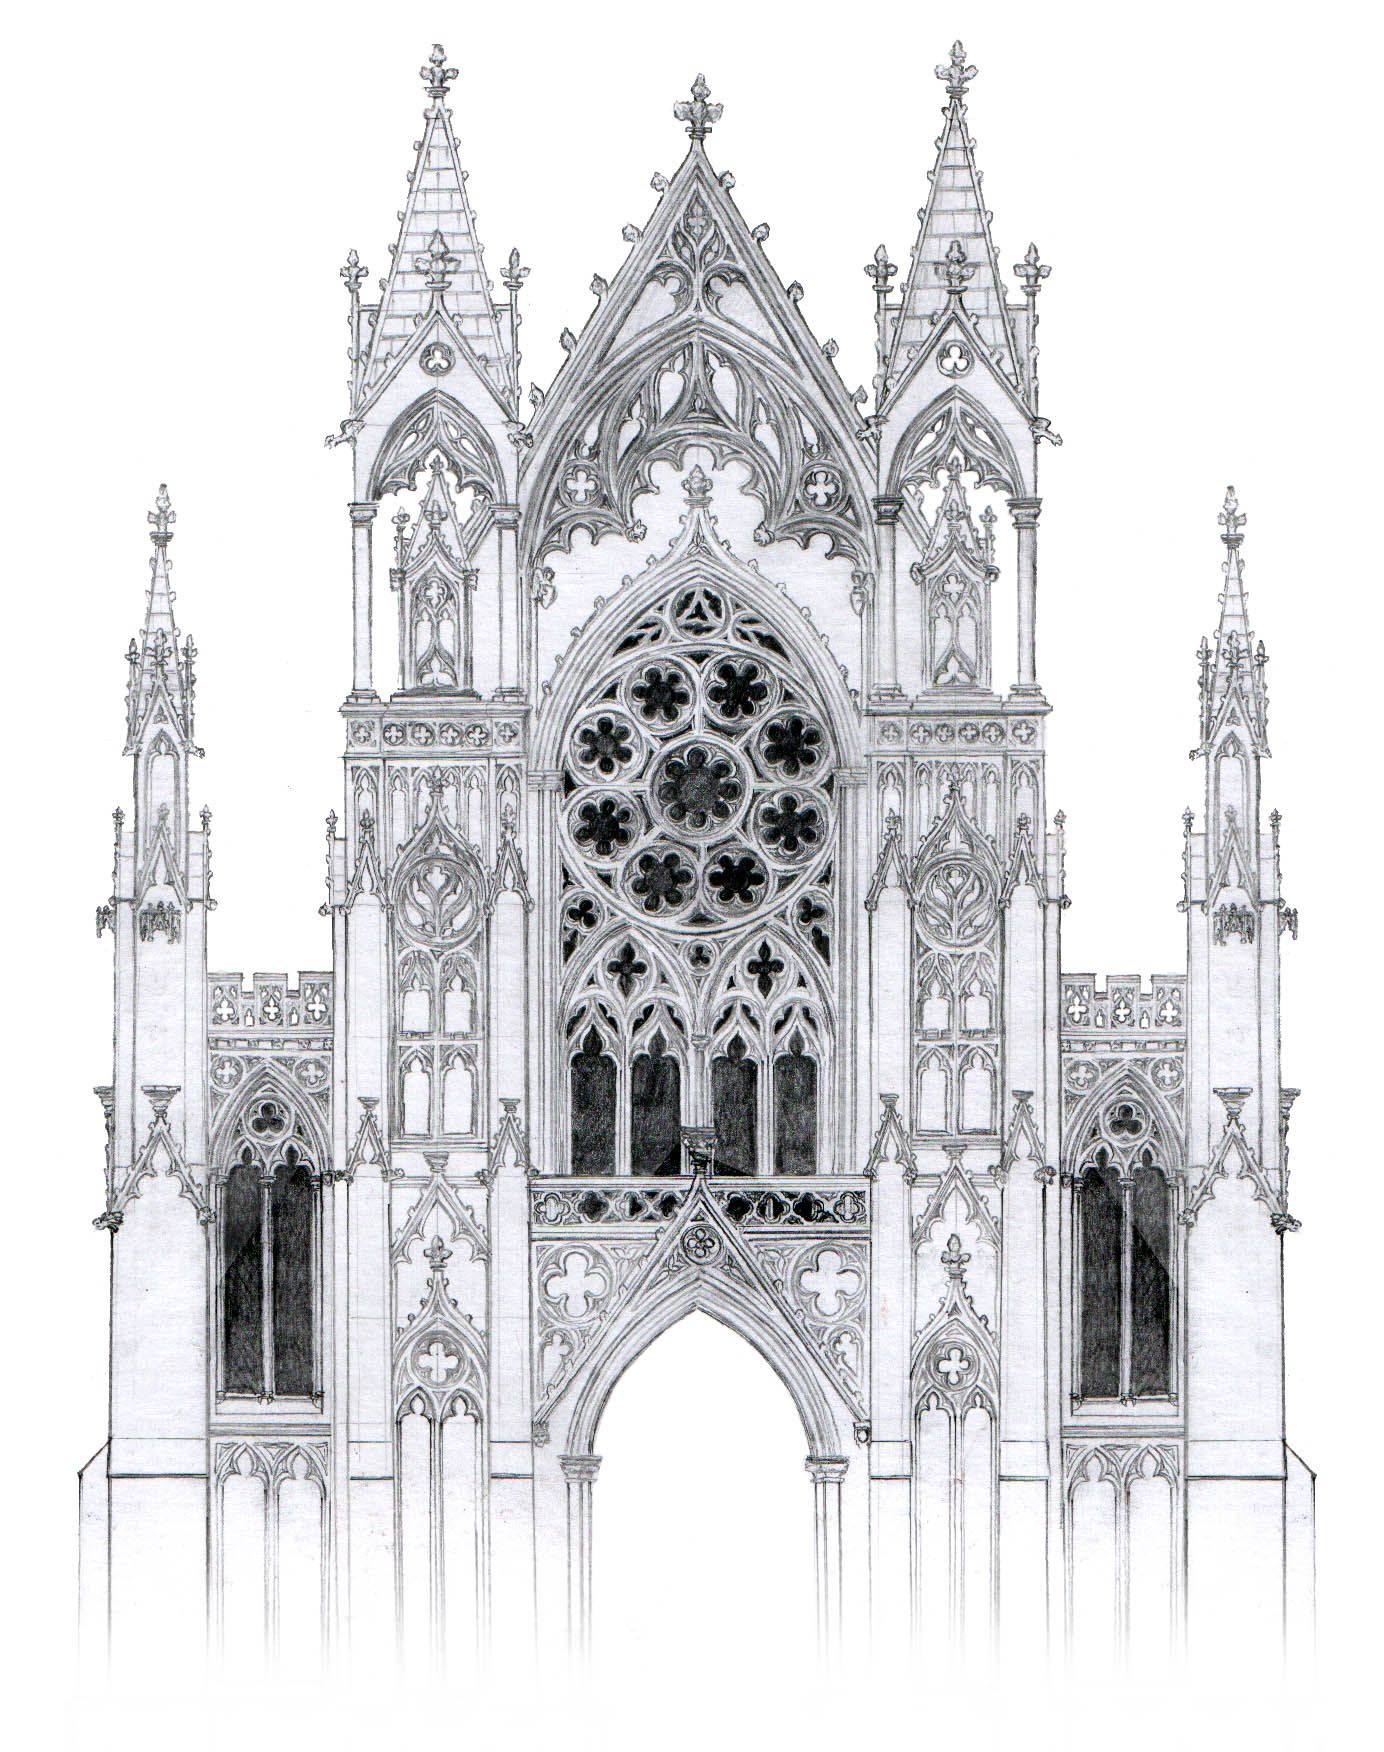 Gothic Facade With Rose Window By Dashinvaine On Deviantart